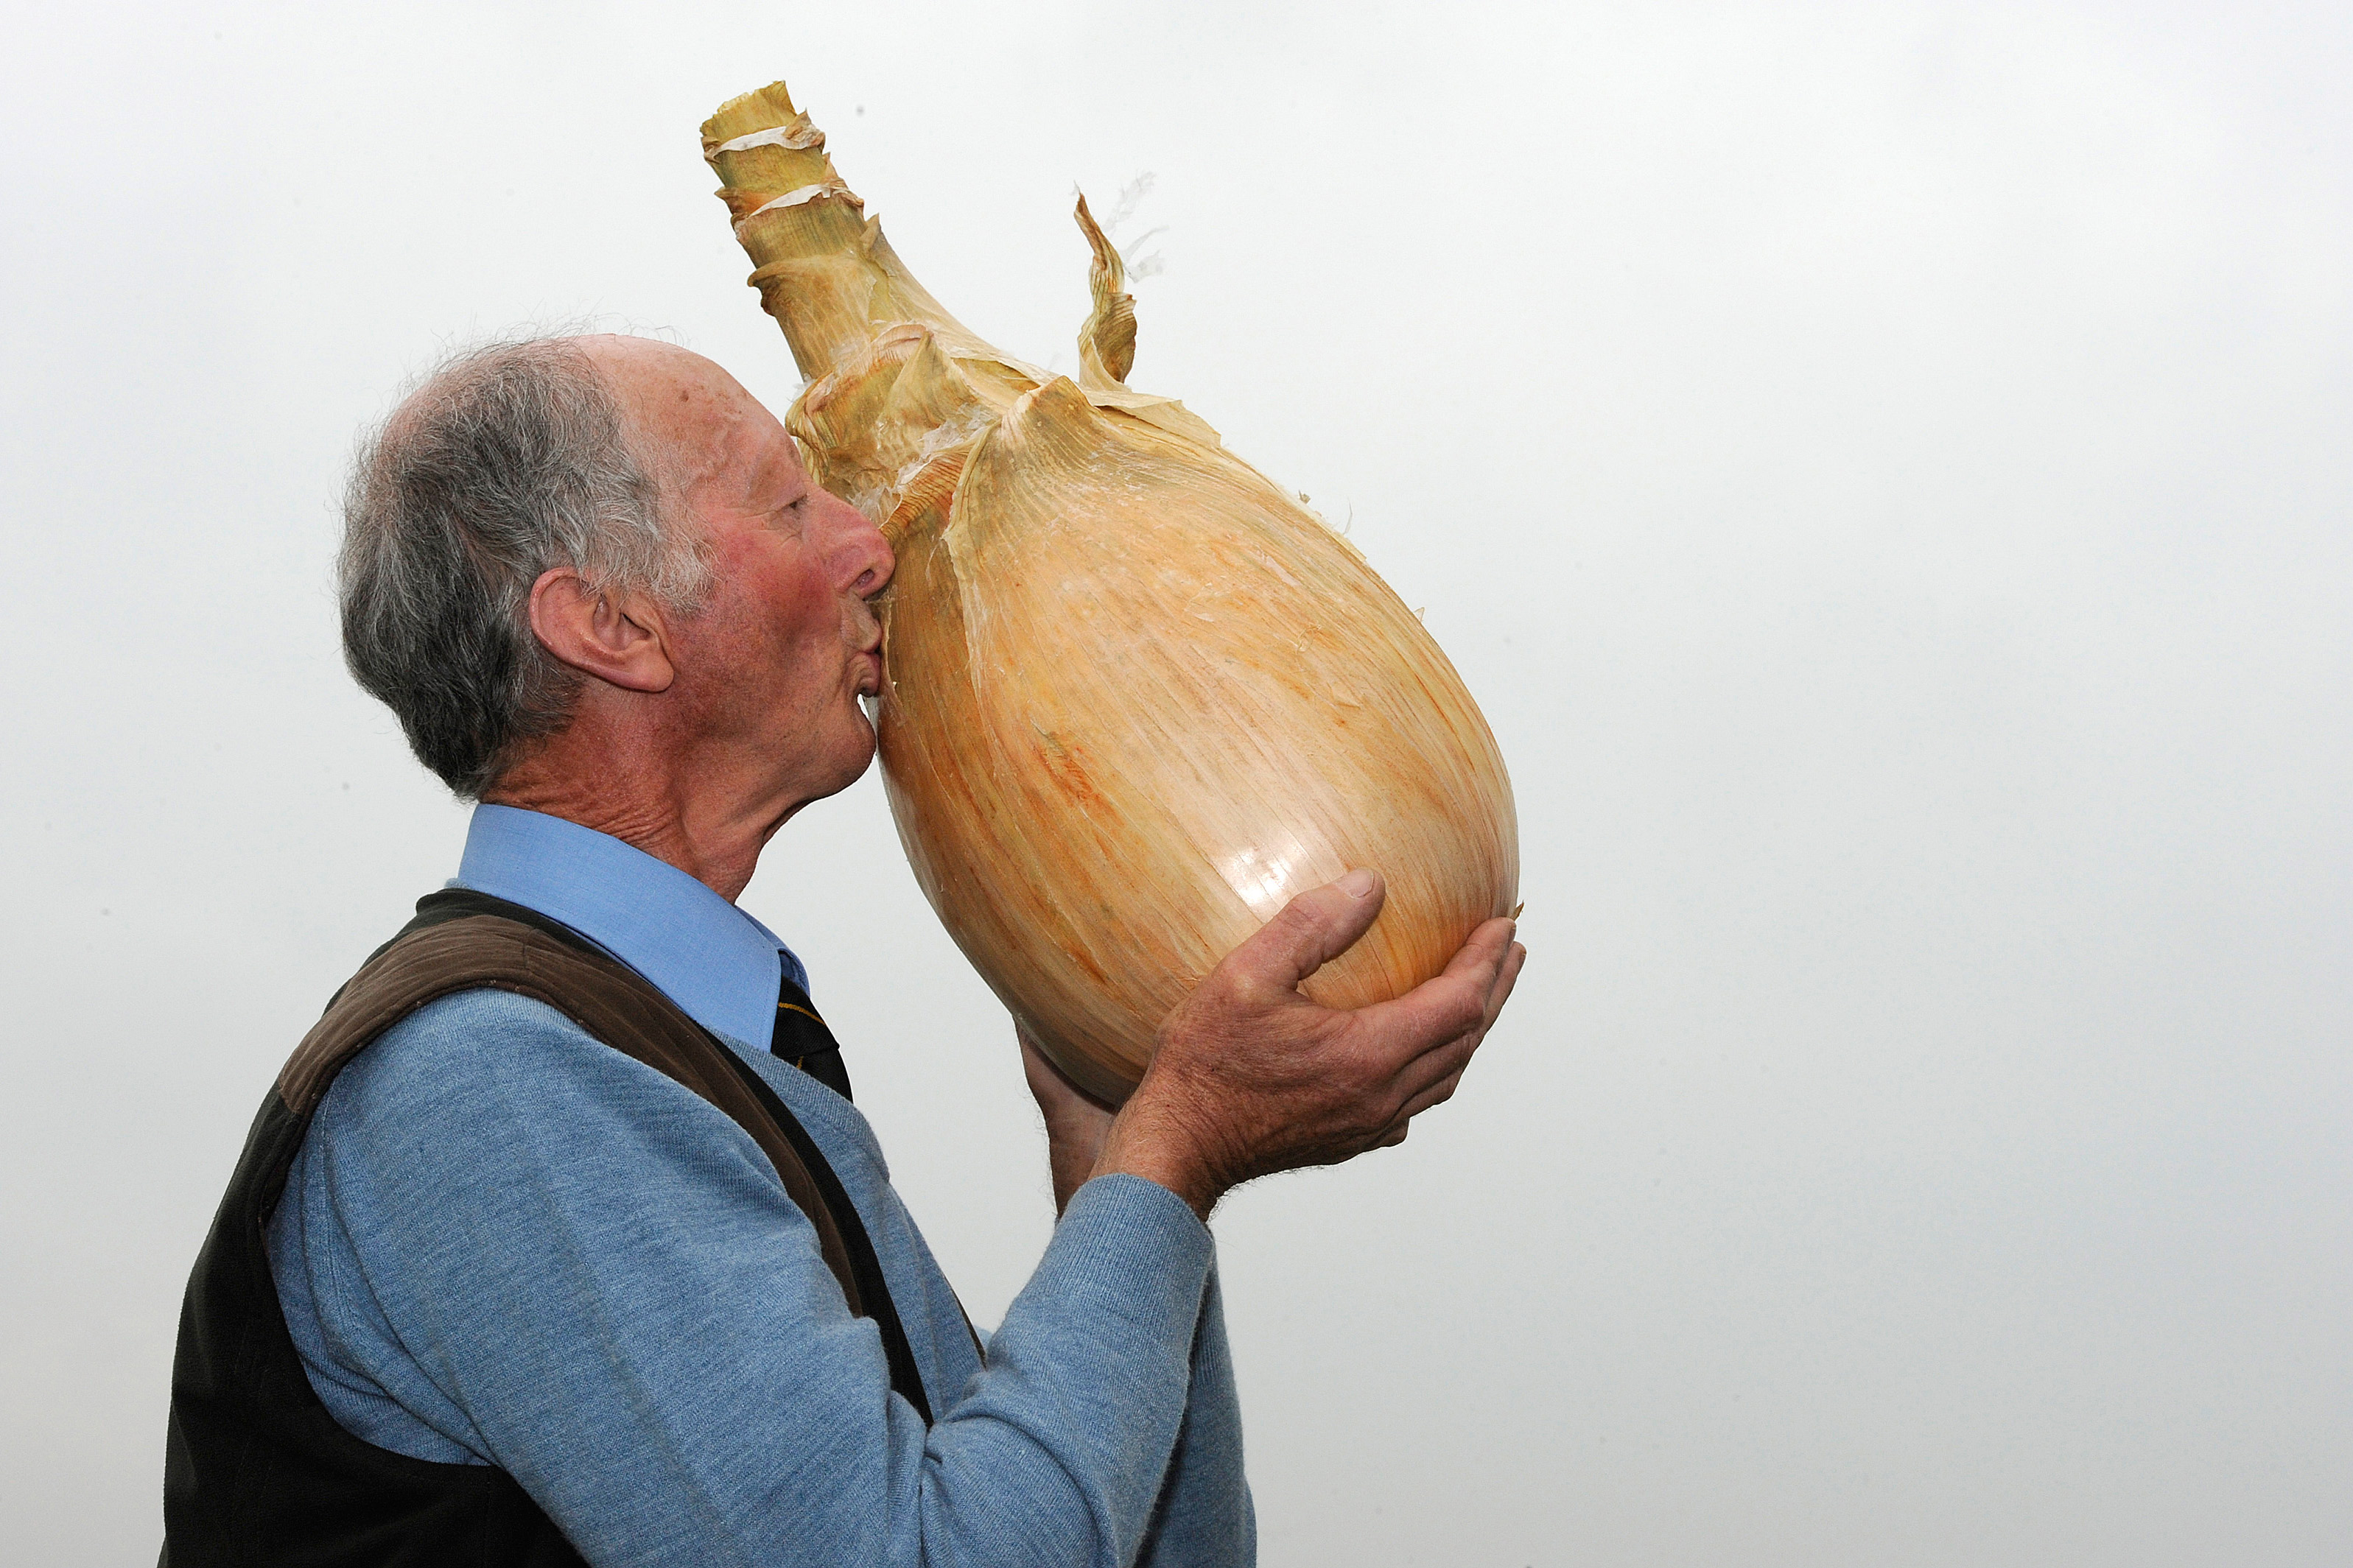 Grower Pete Glazebrook poses for photographers with his onion weighing 17lb 15.5oz  at the Harrogate Autumn Flower Show in Harrogate, northern England September 16, 2011.